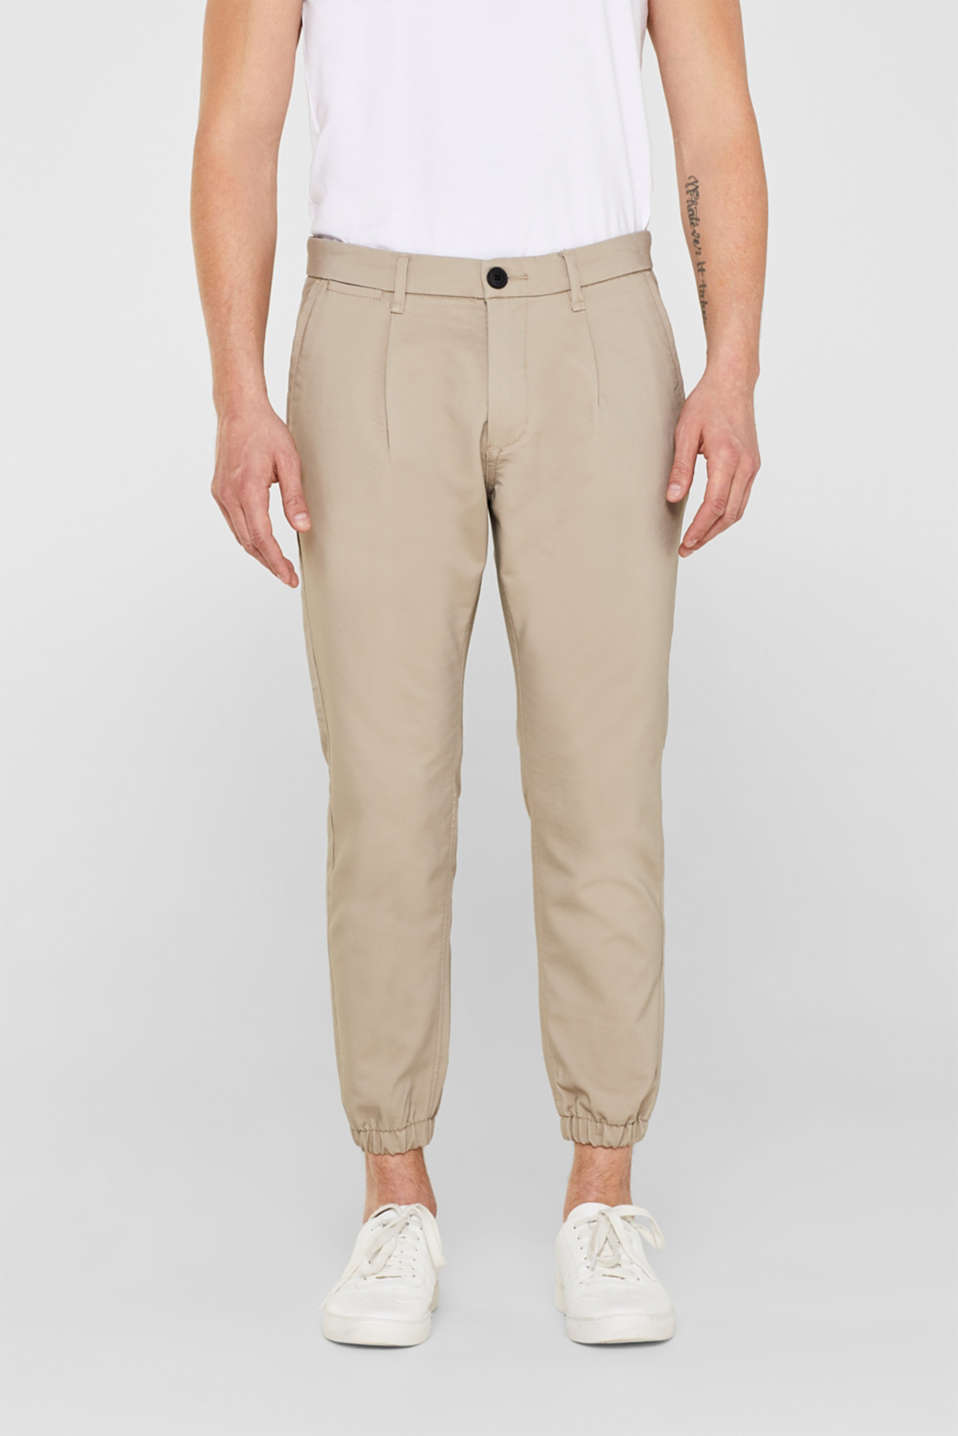 edc - Stretch trousers with elasticated waistband